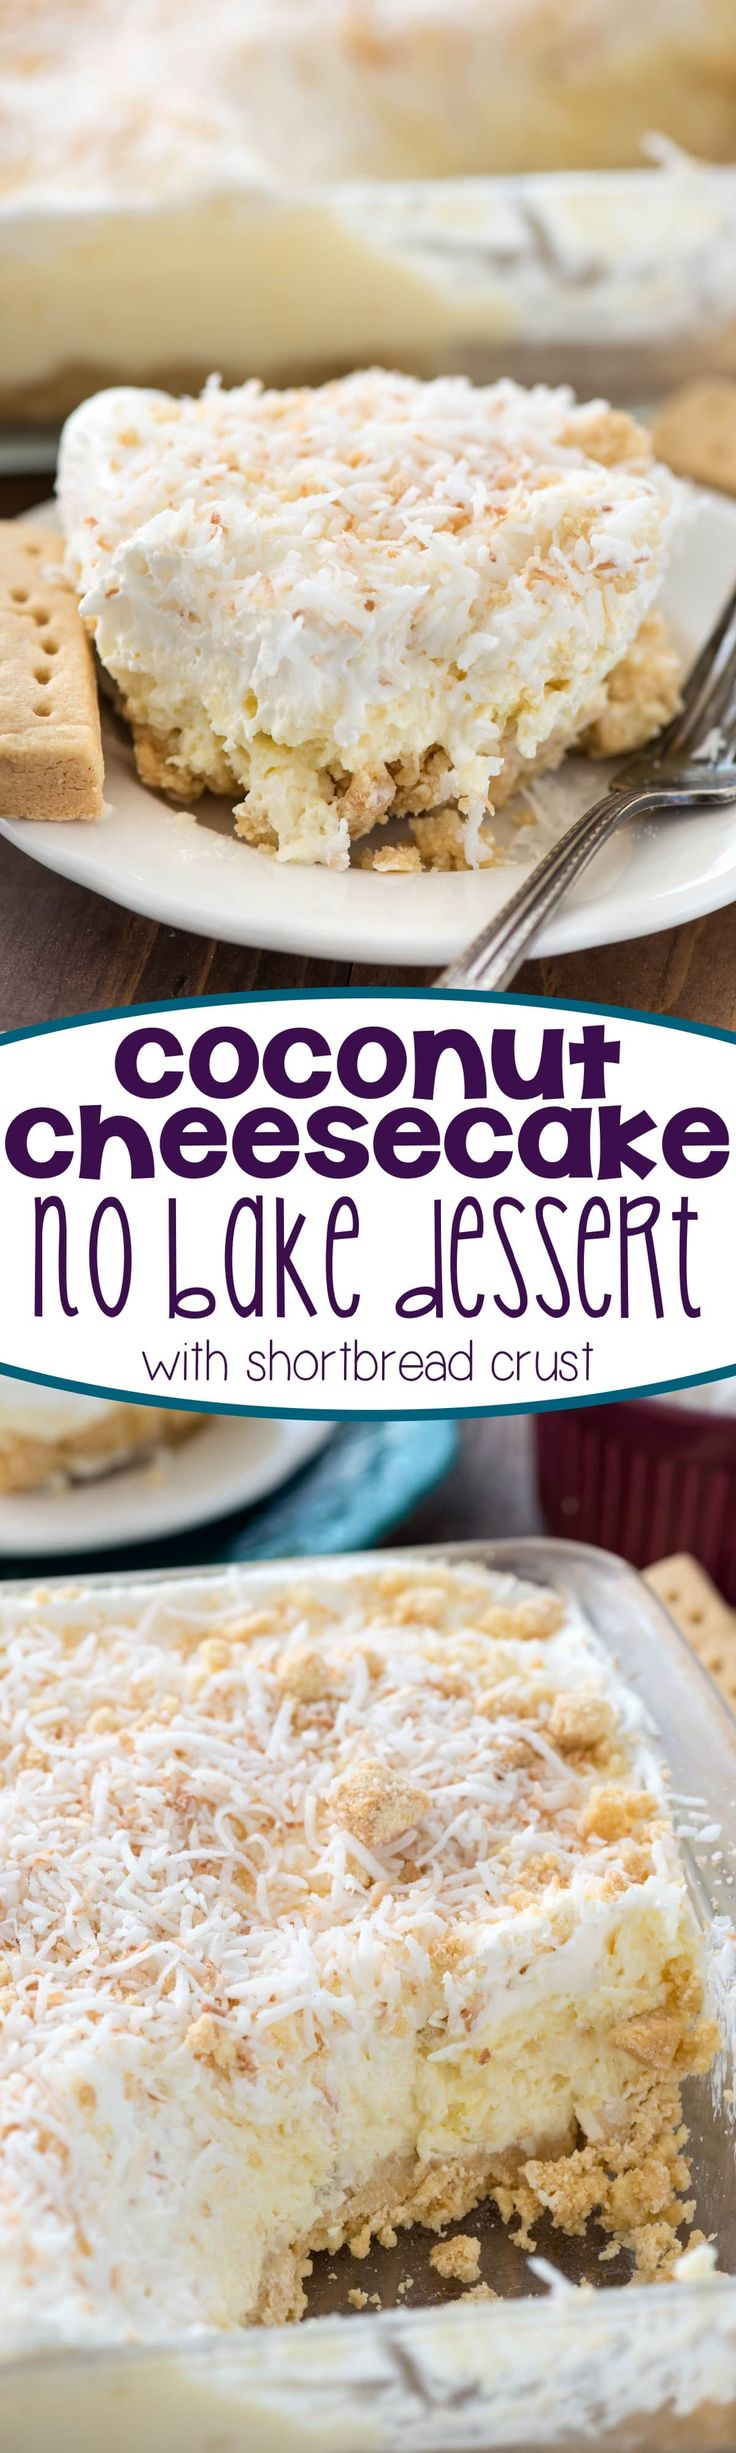 ... Cheesecake on Pinterest | Baked cheese cake, Bake cheesecake recipe